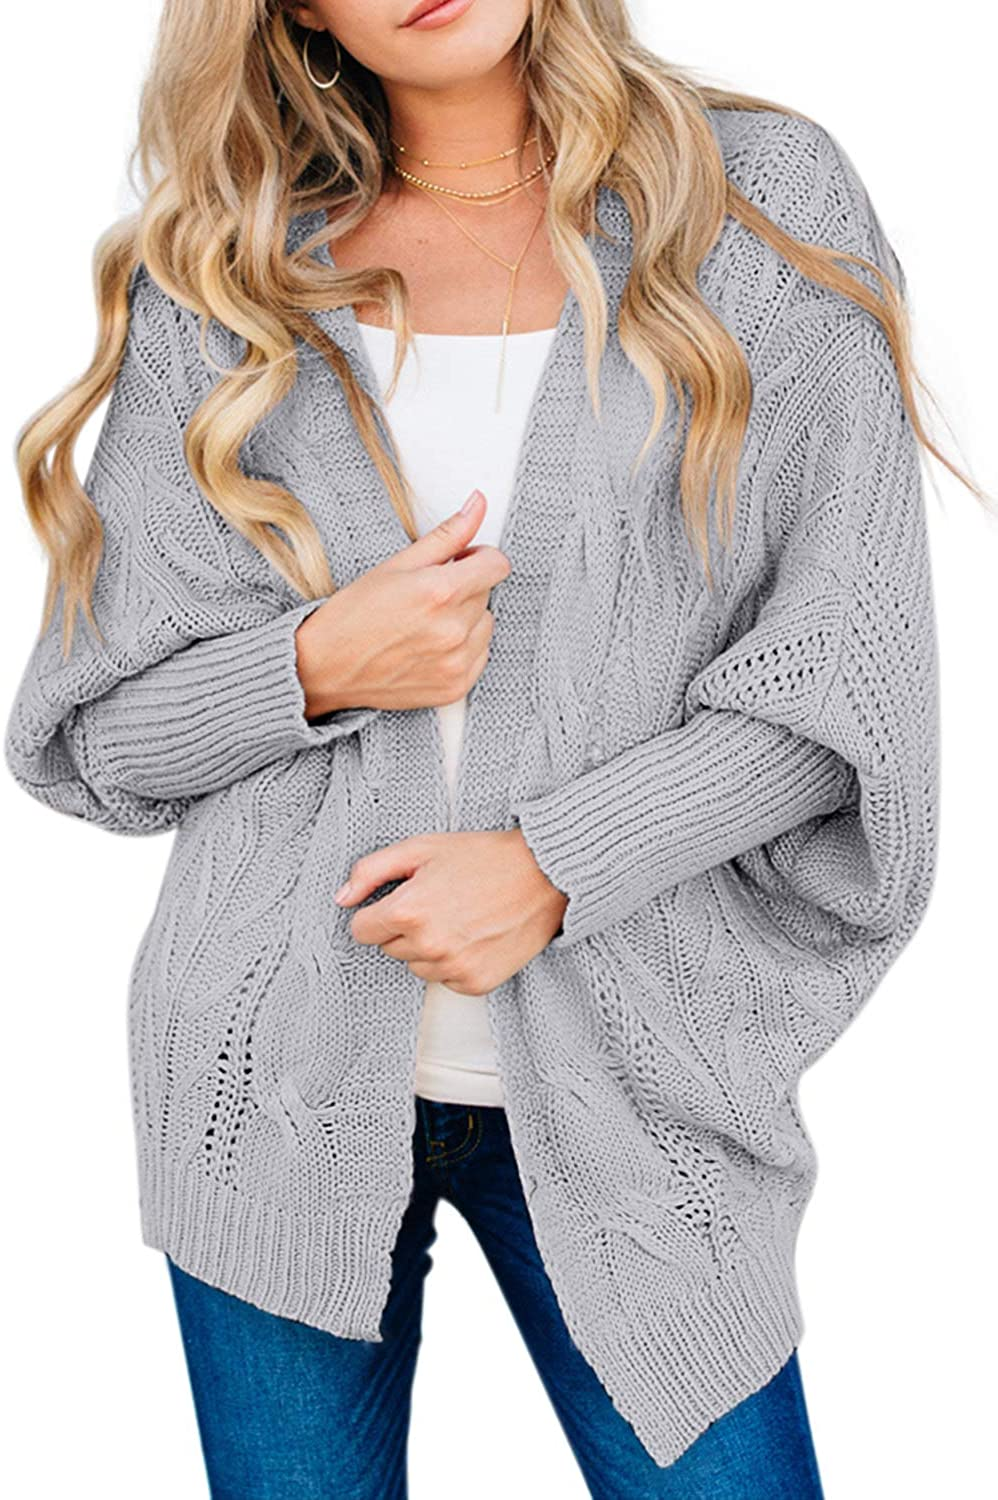 Acelitt Women Casual Winter Button Down Ribbed Open Front Knit Sweater Cardigan with Pockets,S-XXL